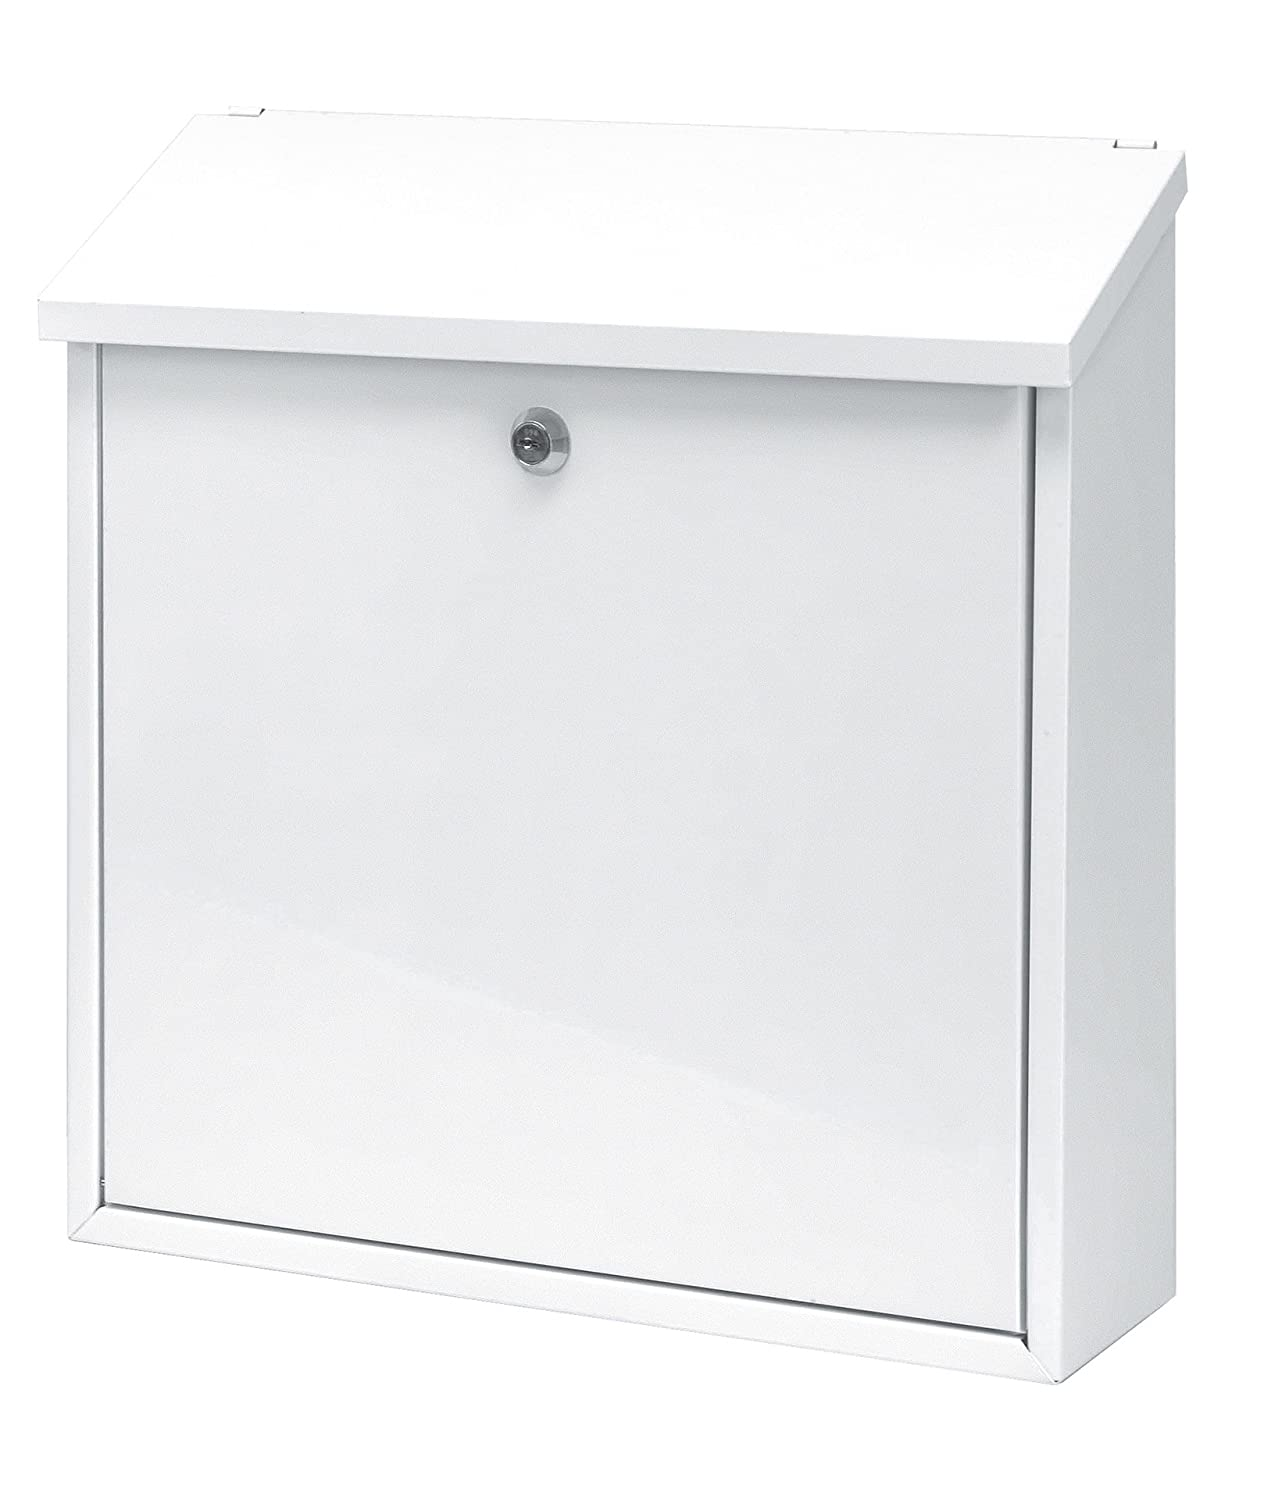 V-Part Wall-Mounted Post Box Height 37 cm White VB 440050